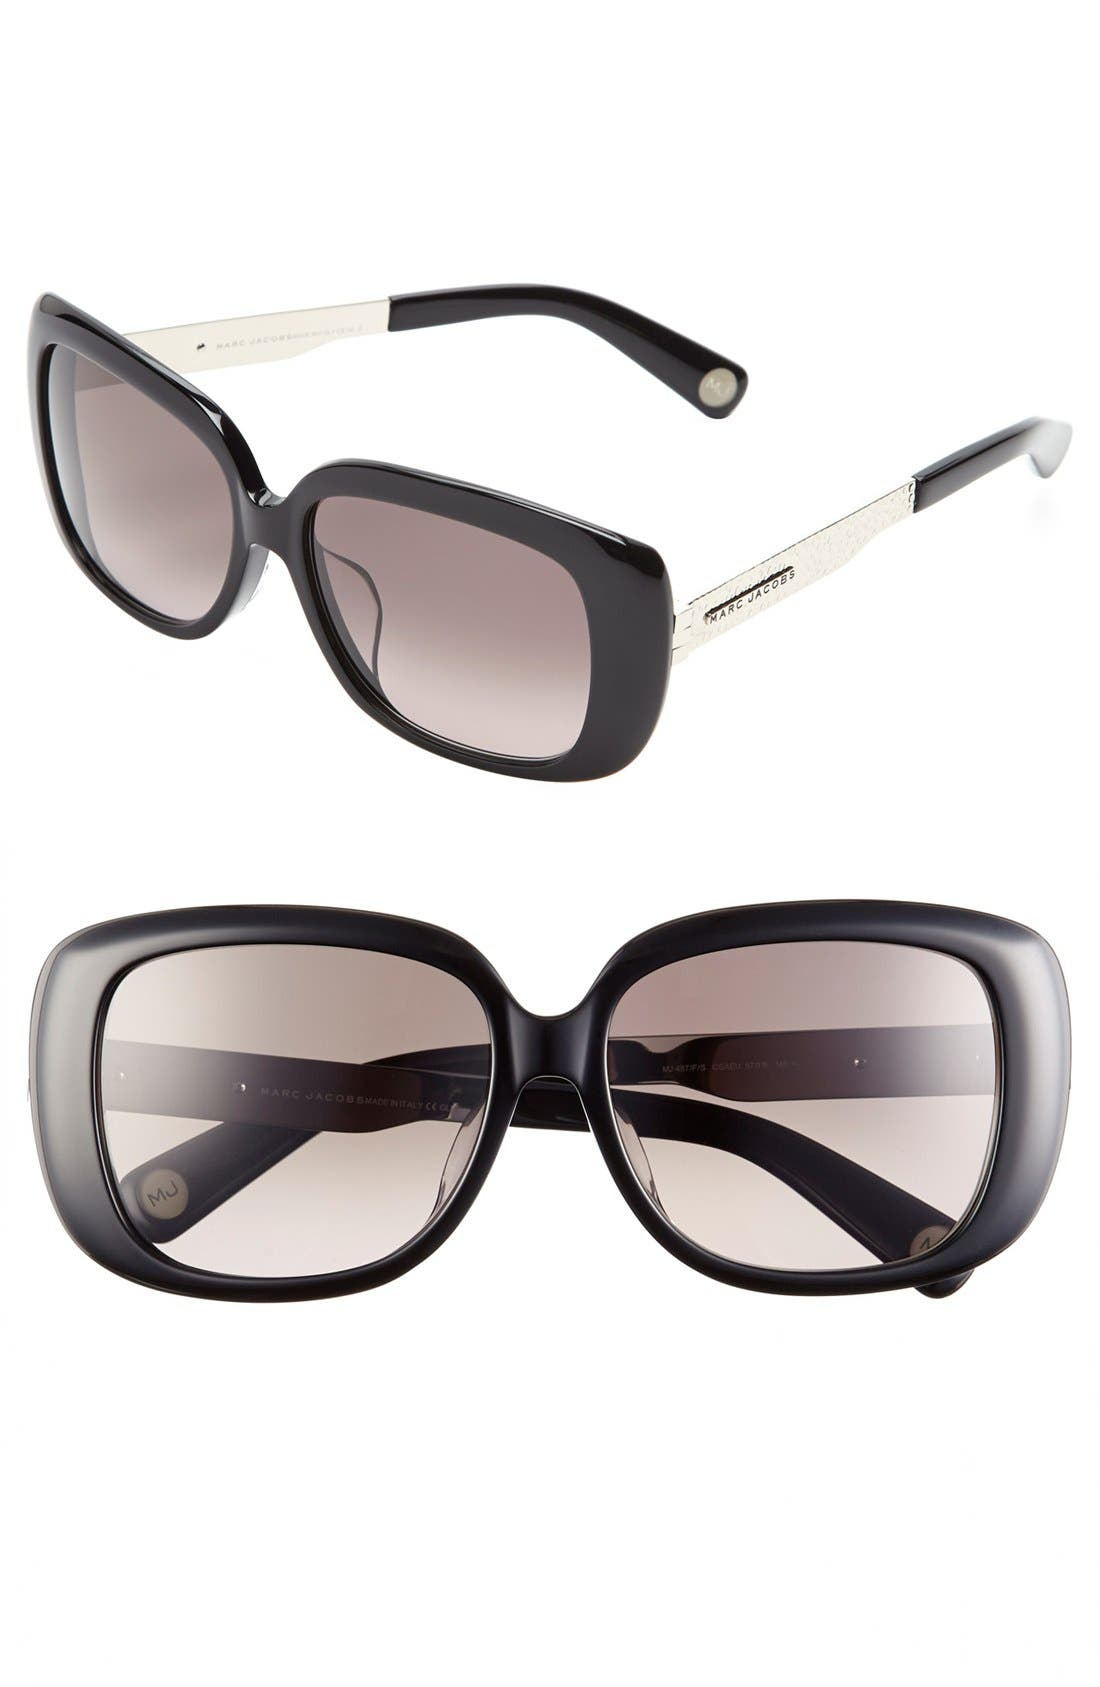 Alternate Image 1 Selected - MARC JACOBS 57mm Oversized Sunglasses